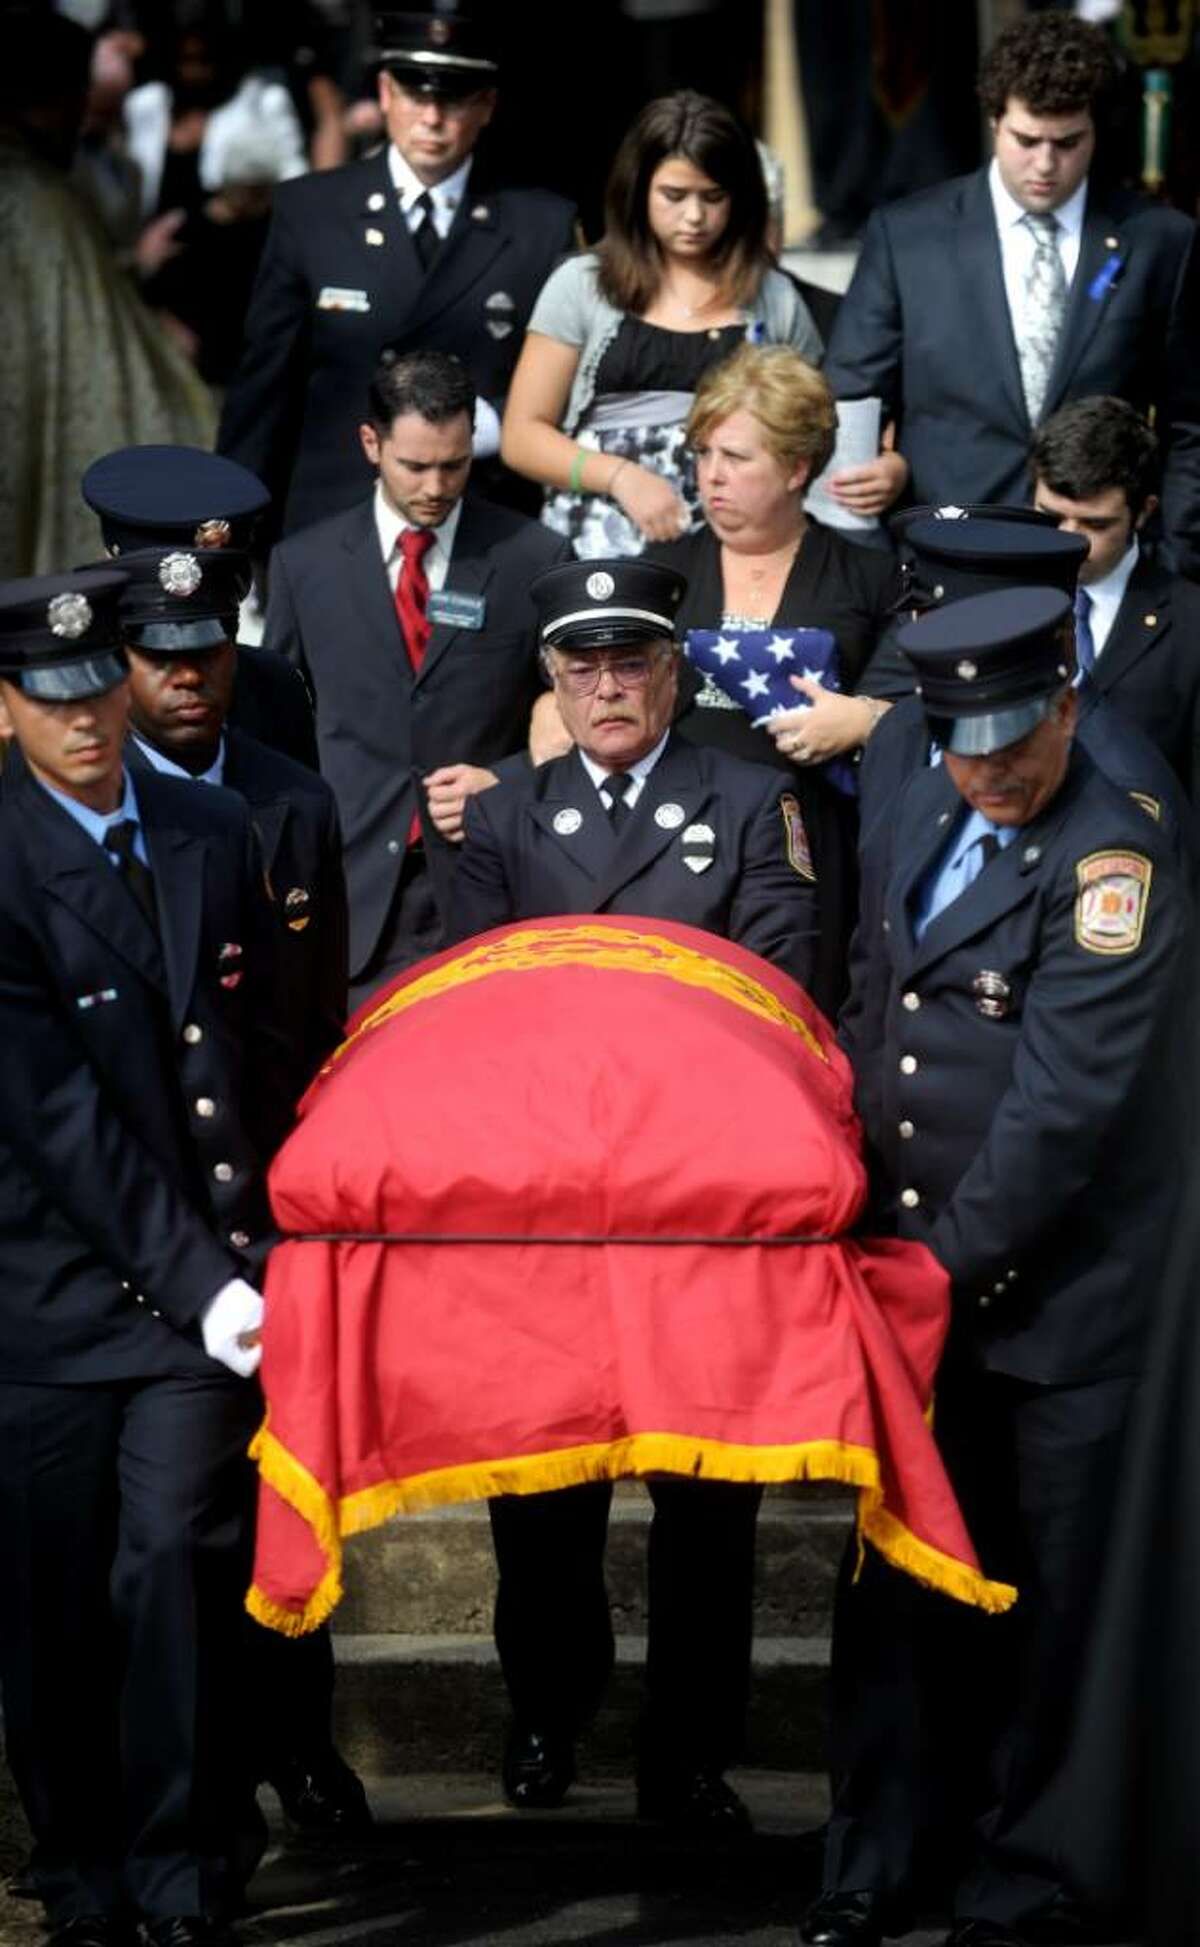 Firefighters carry the casket of Michel Baik as his wife and children follow down the steps of St. Nicholas Antiochian Orthodox Church in Bridgeport on Friday, July 30, 2010.